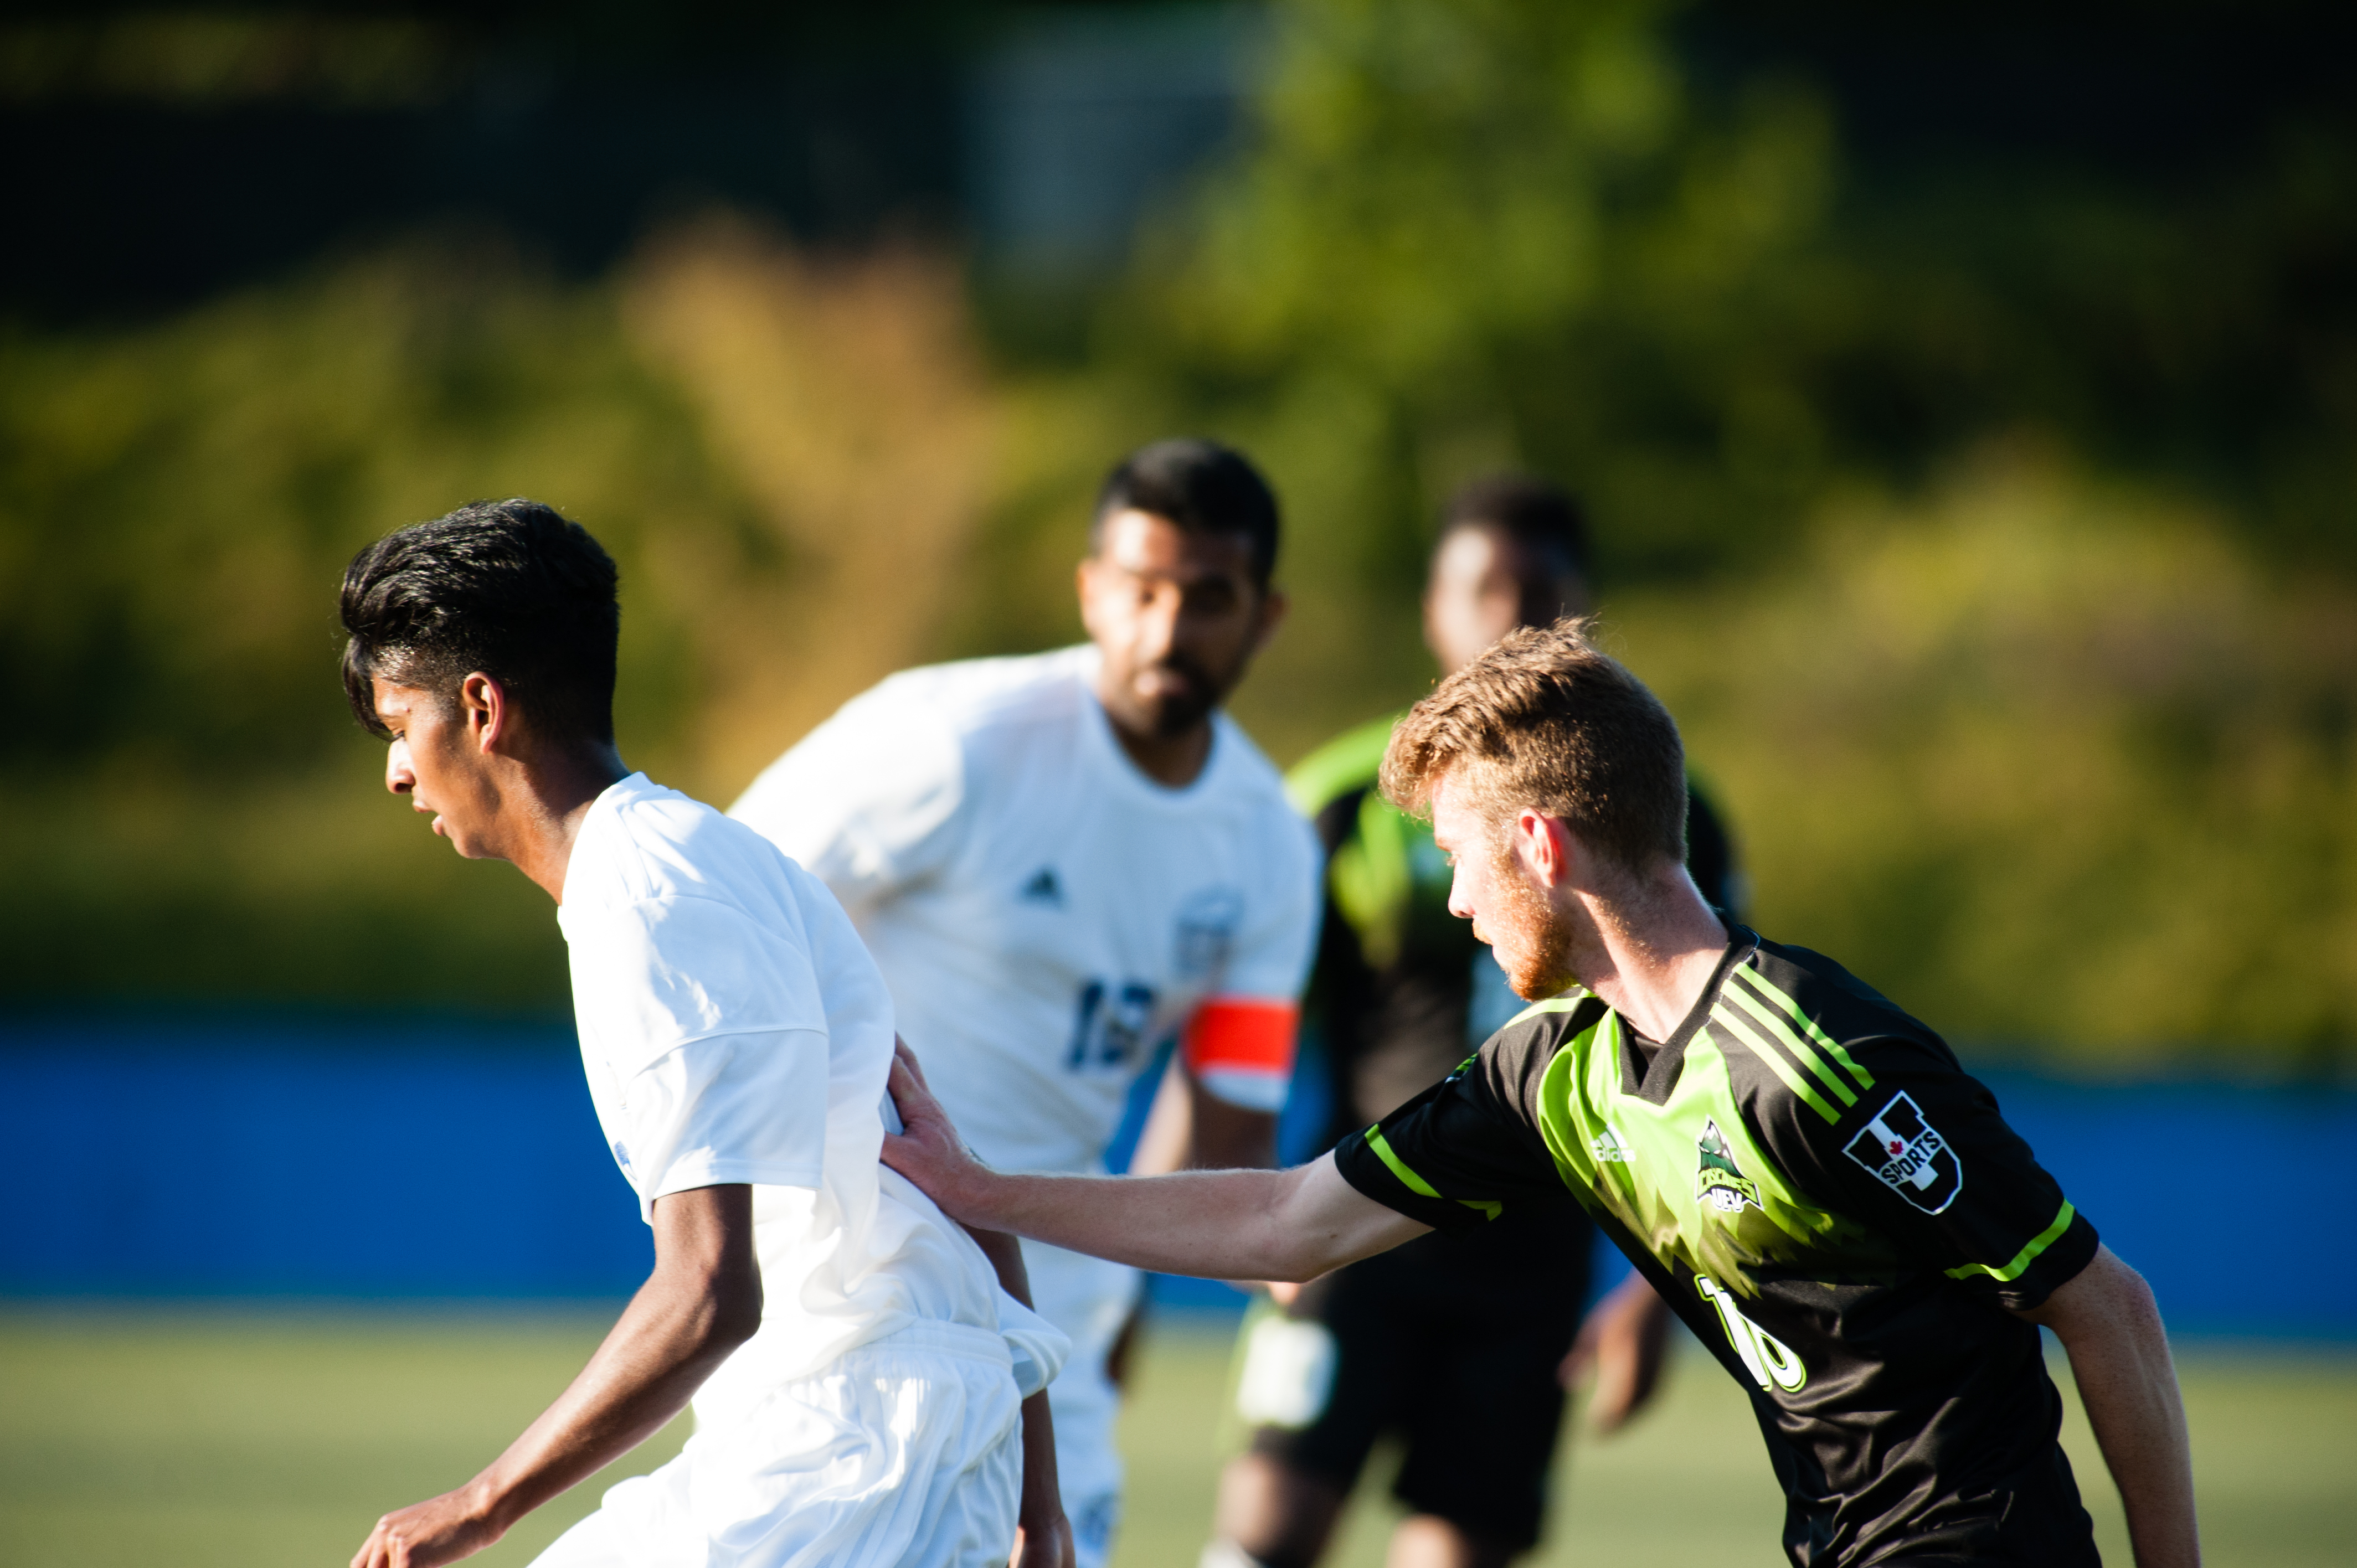 Cascades midfielder Brady Weir defends while UBC's Zach Verhoven receives a free kick.